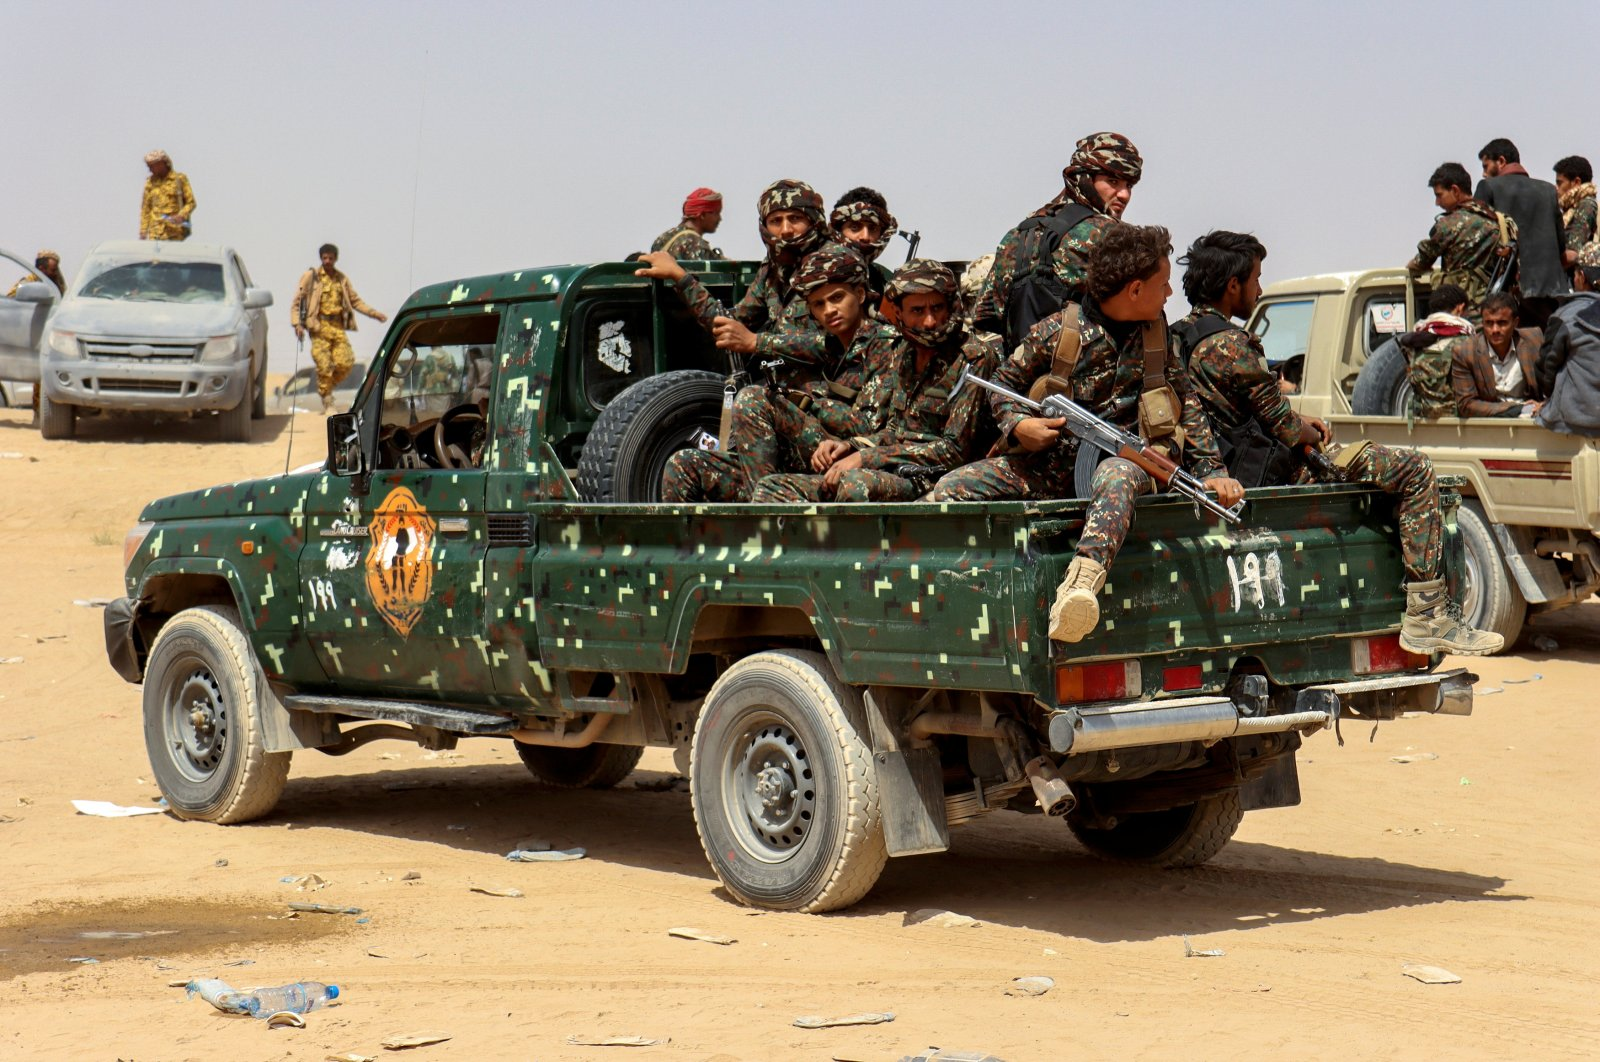 Soldiers ride on the back of a patrol truck during the burial of Brig. Gen. Abdul-Ghani Shaalan, commander of the Special Security Forces in Marib who was killed in recent fighting with Houthi fighters in Marib, Yemen, Feb. 28, 2021. (Reuters Photo)